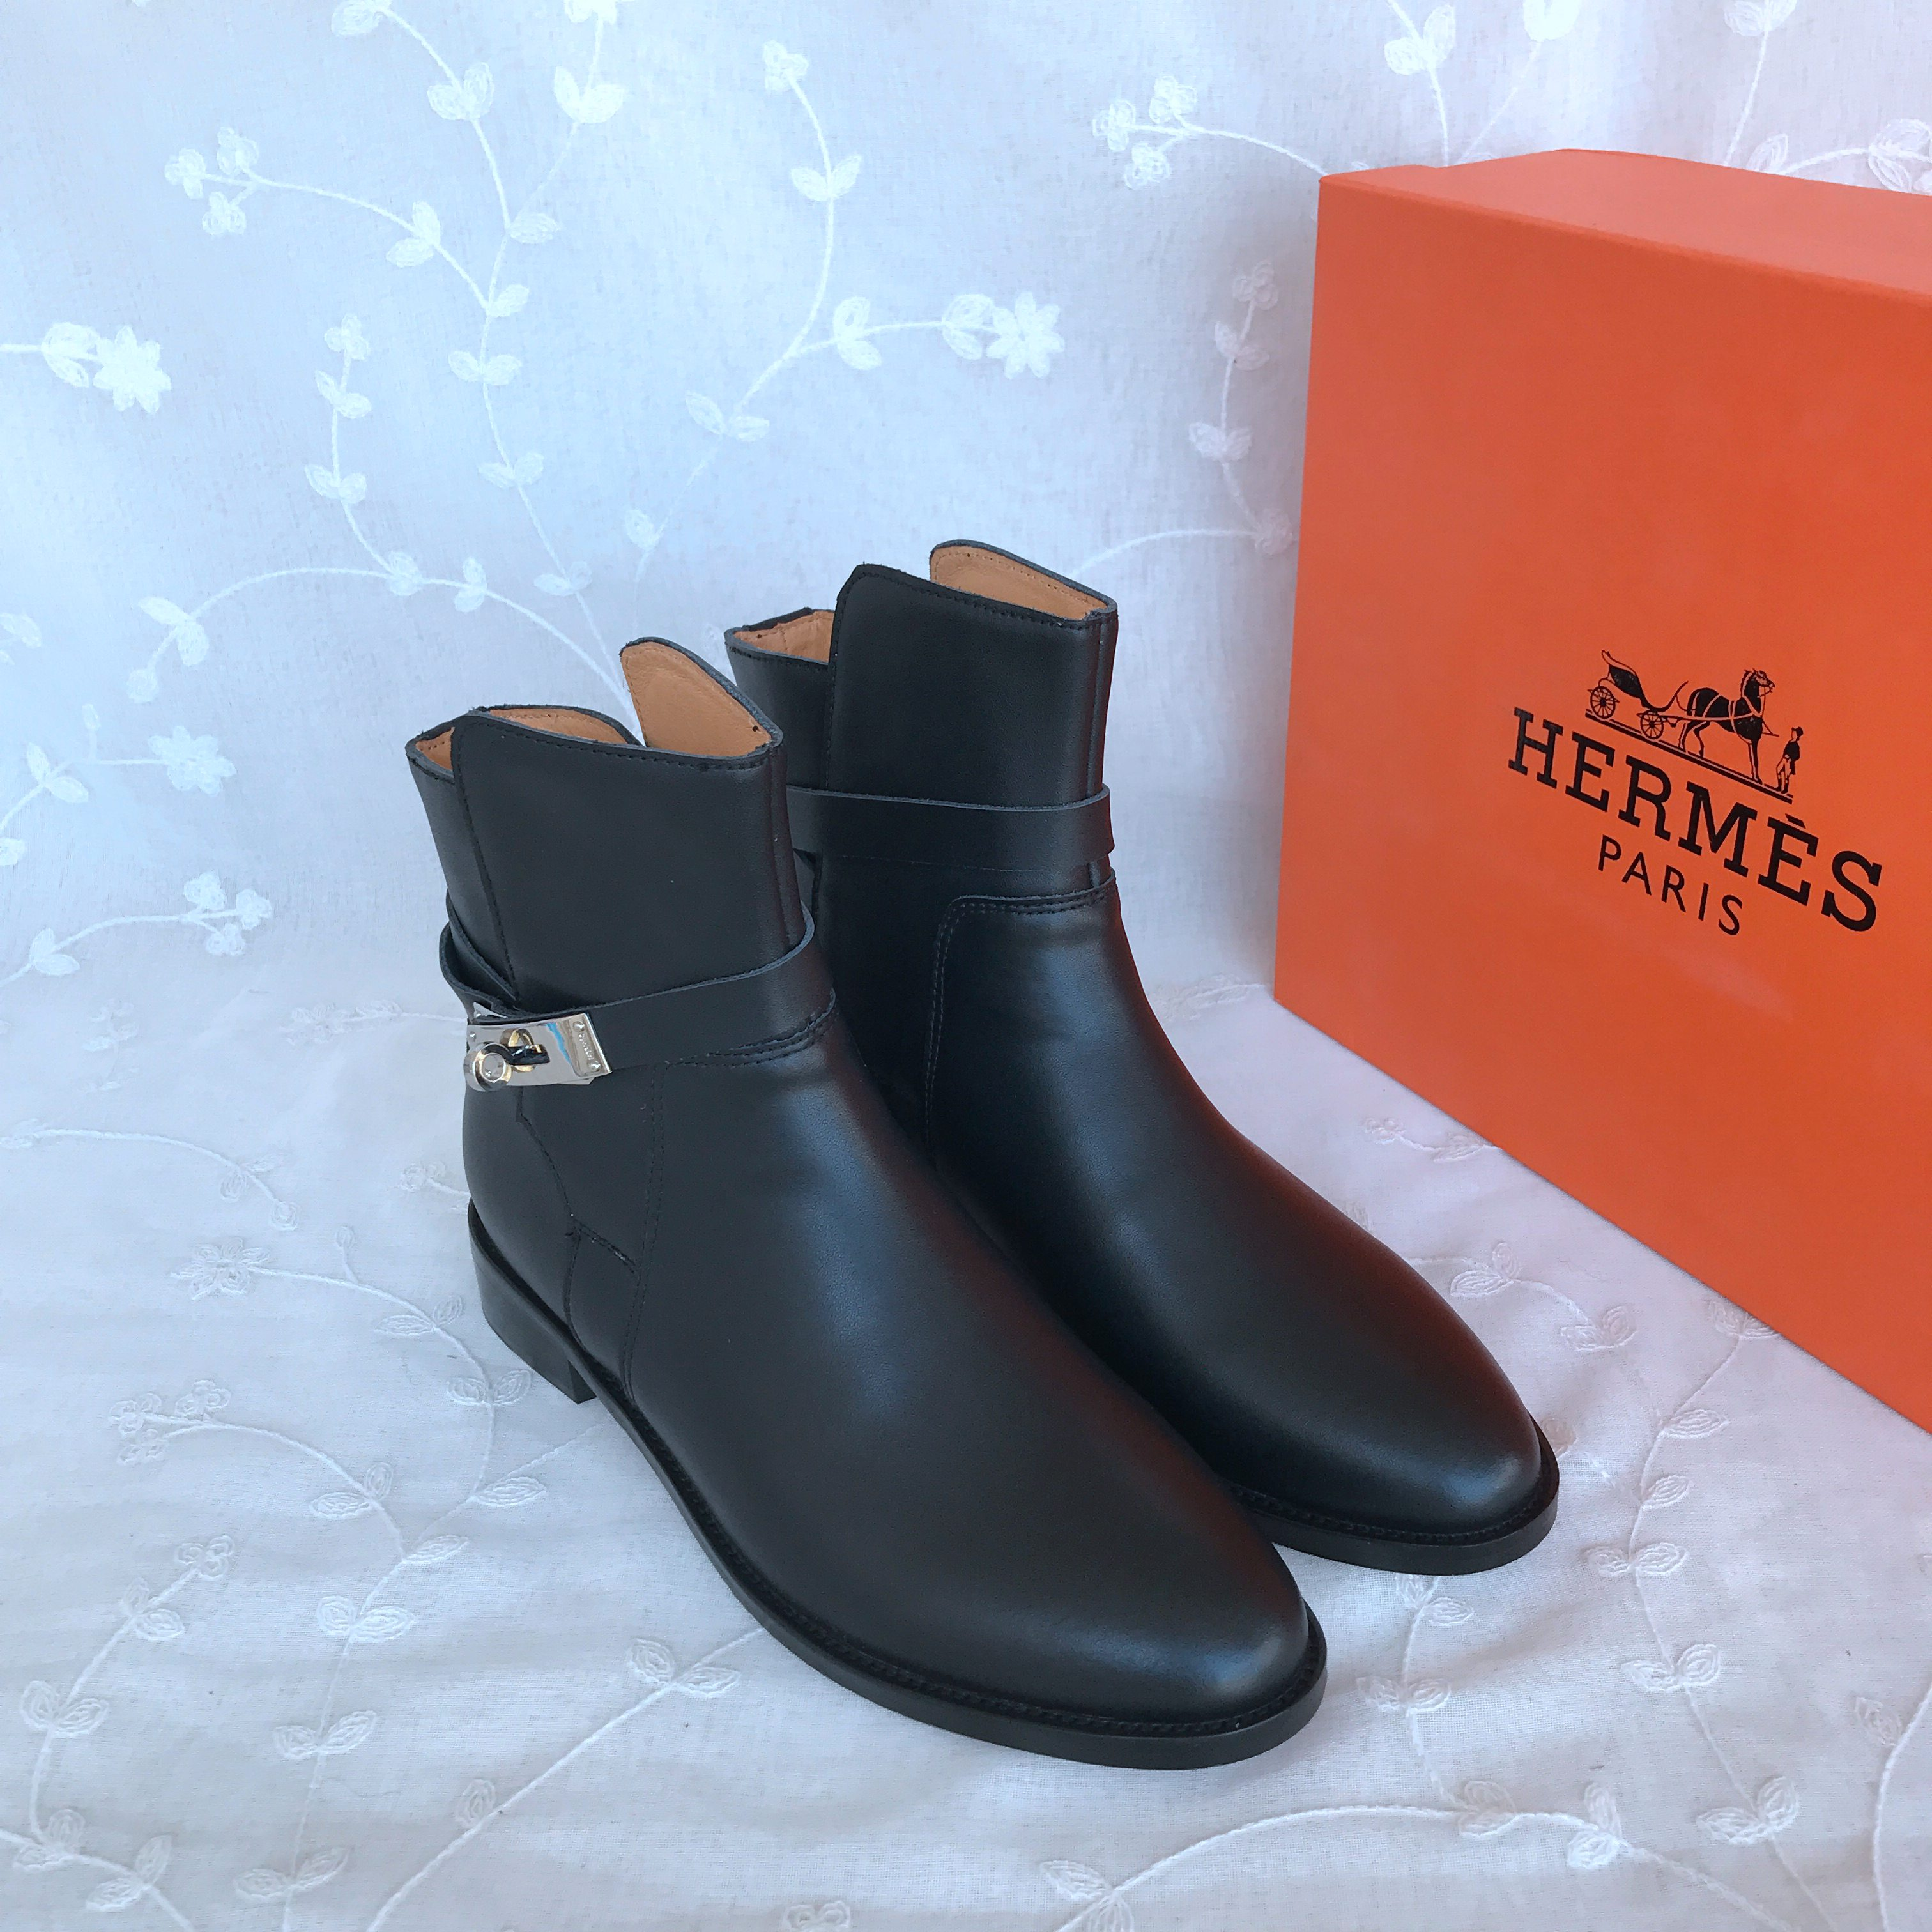 Hermes Boots 833049